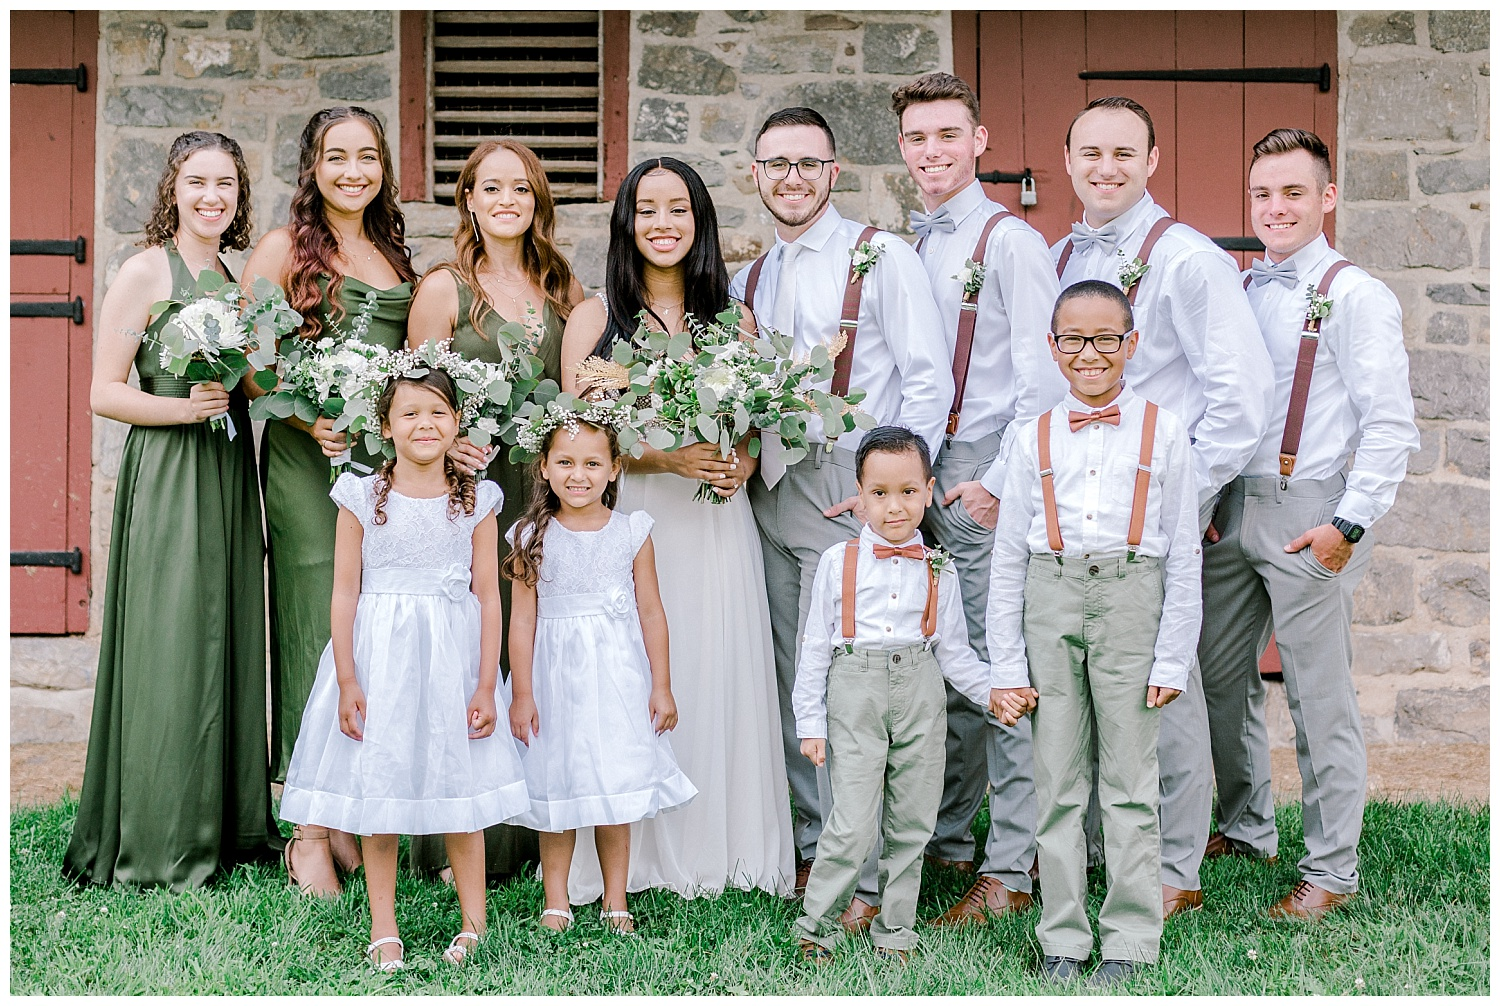 Olive green and white rustic barn wedding at burnside plantation in bethlehem pennsylvania by PA based destination wedding and lifestyle photographer Lytle photography (28).jpg